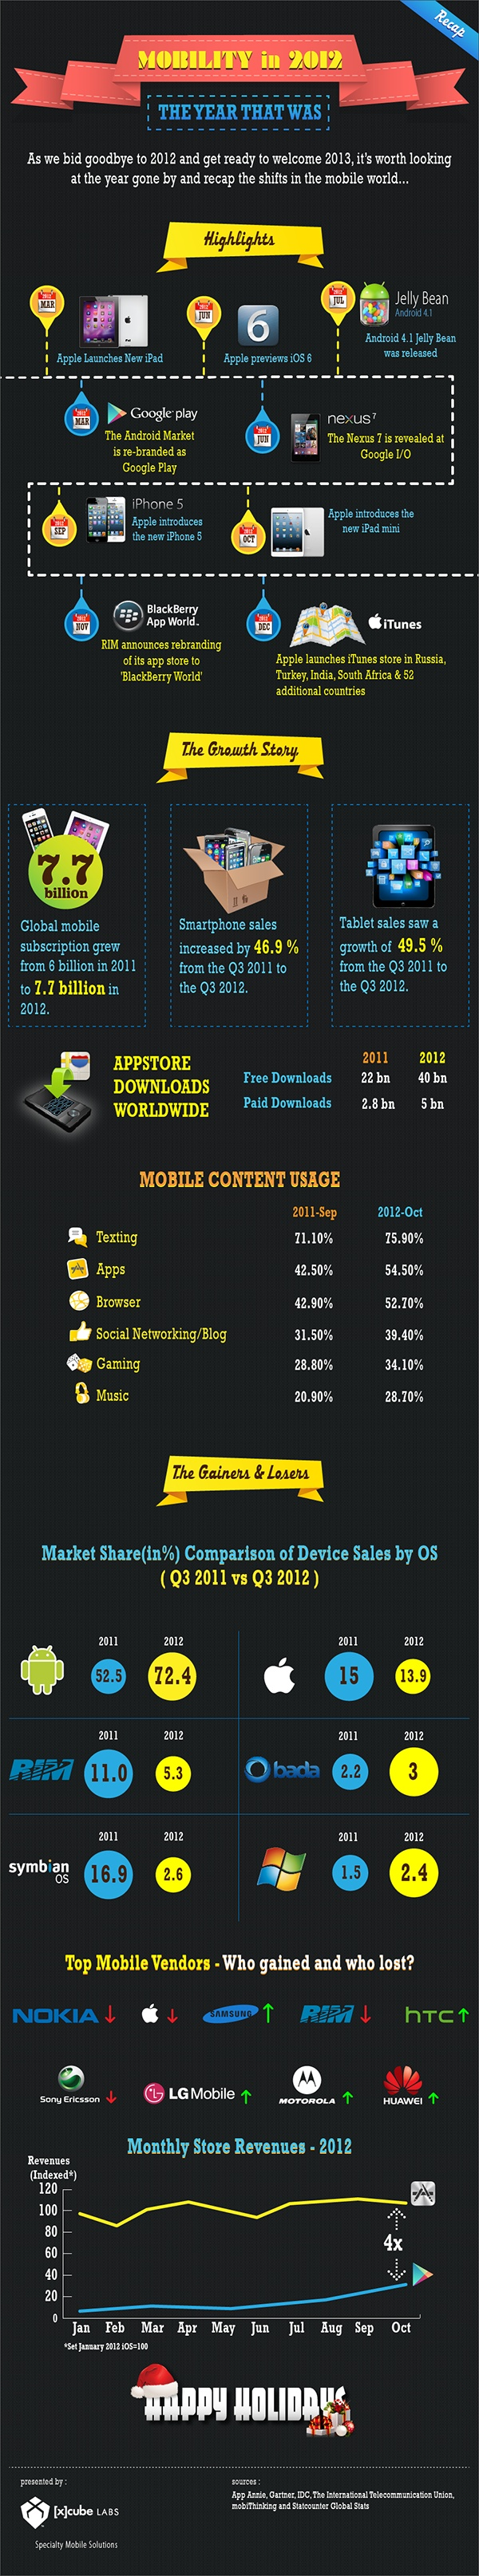 The infographic, Mobility in 2012, takes you through the journey of mobile in the year.  It gives an overview of the changes that took place in the mobile market, platforms, devices , app markets, mobile vendors, facts, figures, growth and more.